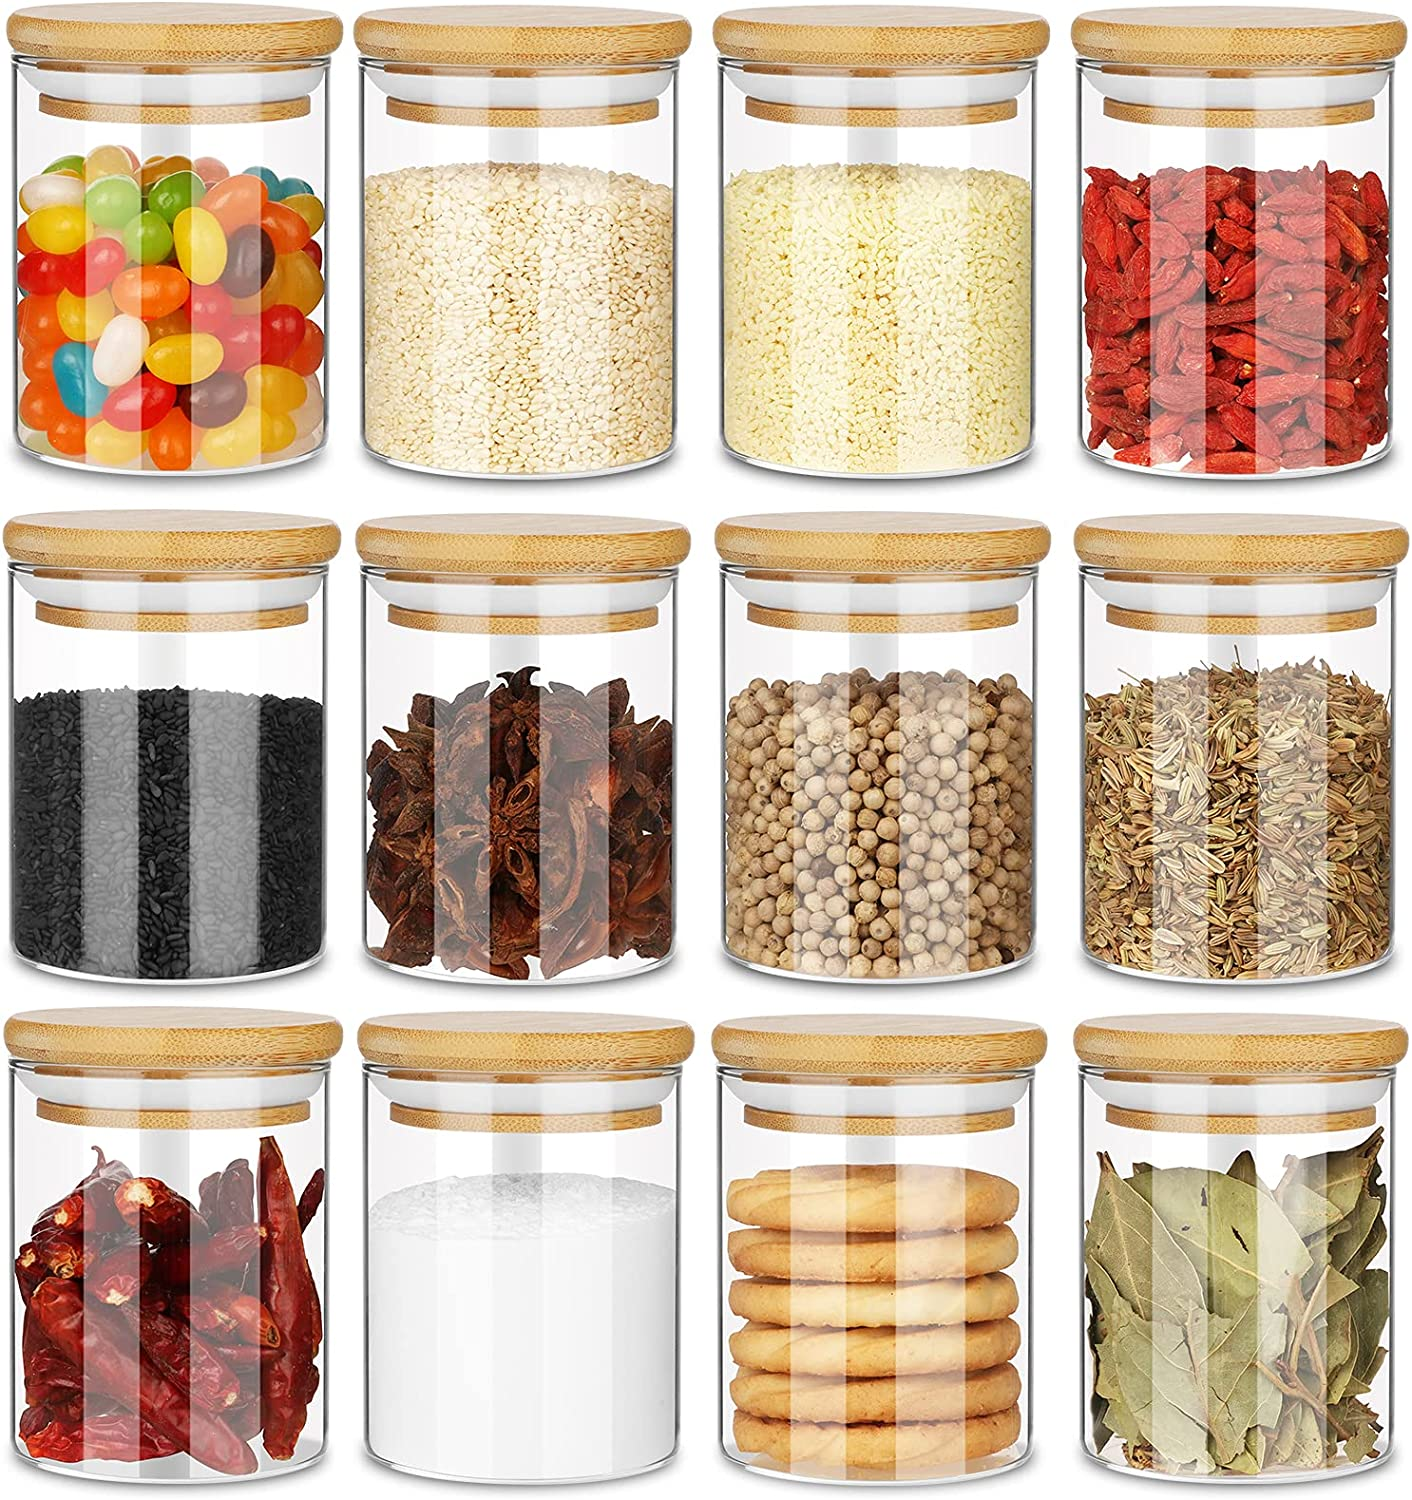 Gogenic Glass Jars Set Upgrade Max 90% Recommendation OFF Wood Lid Airtight with Spice